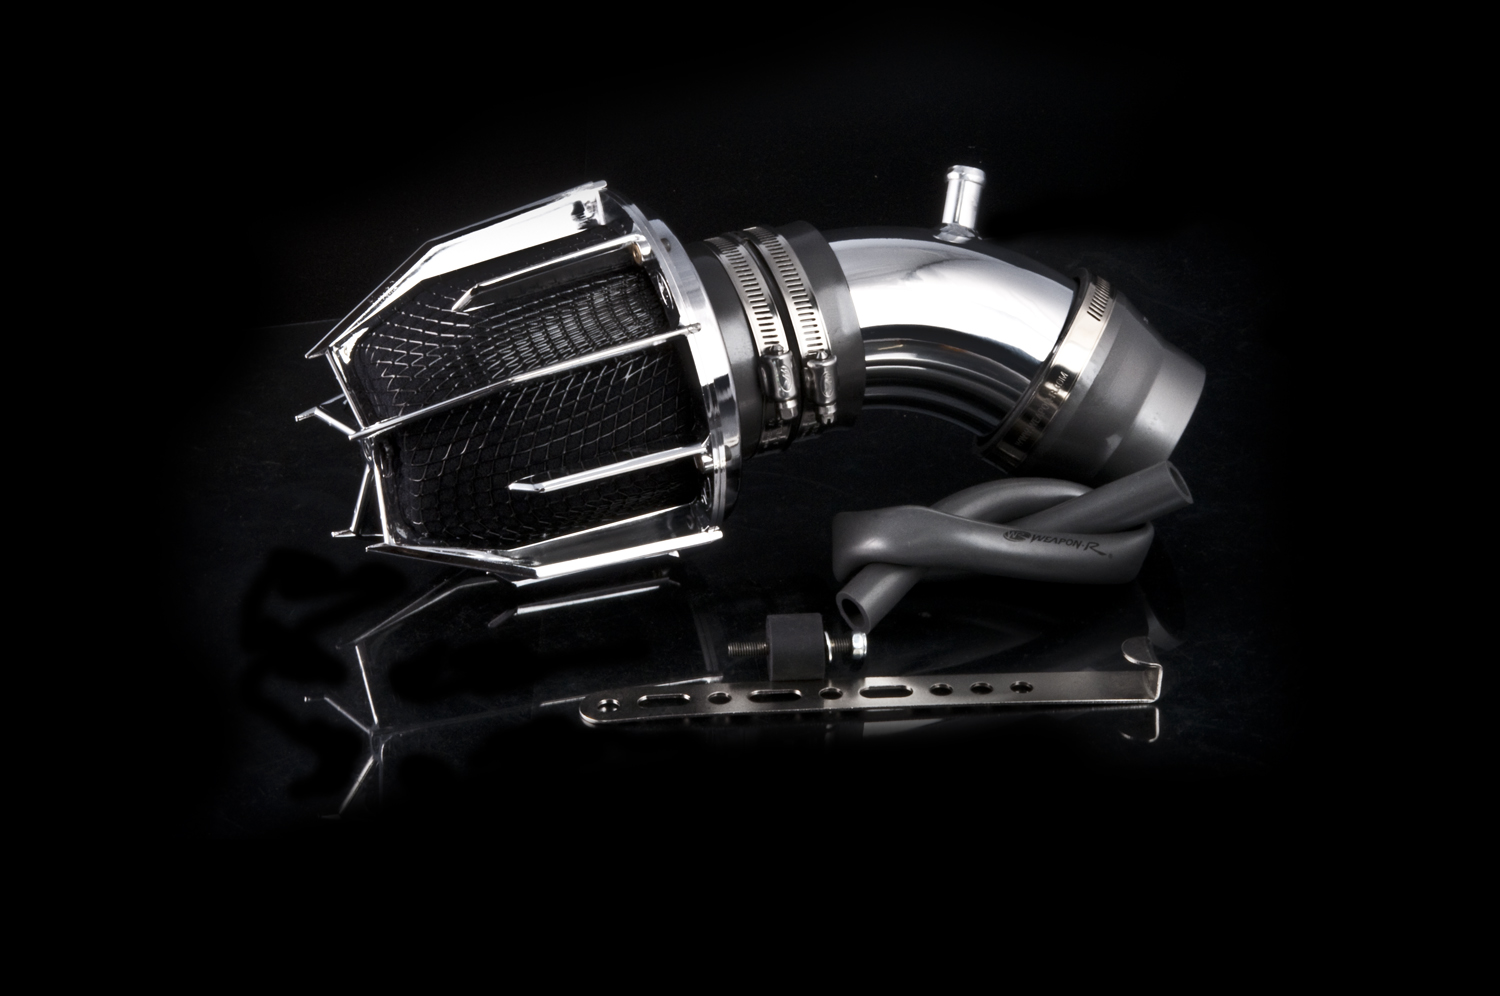 Hyundai Sonata 3.3l V6 2006-2008 Weapon-R Dragon Air Intake